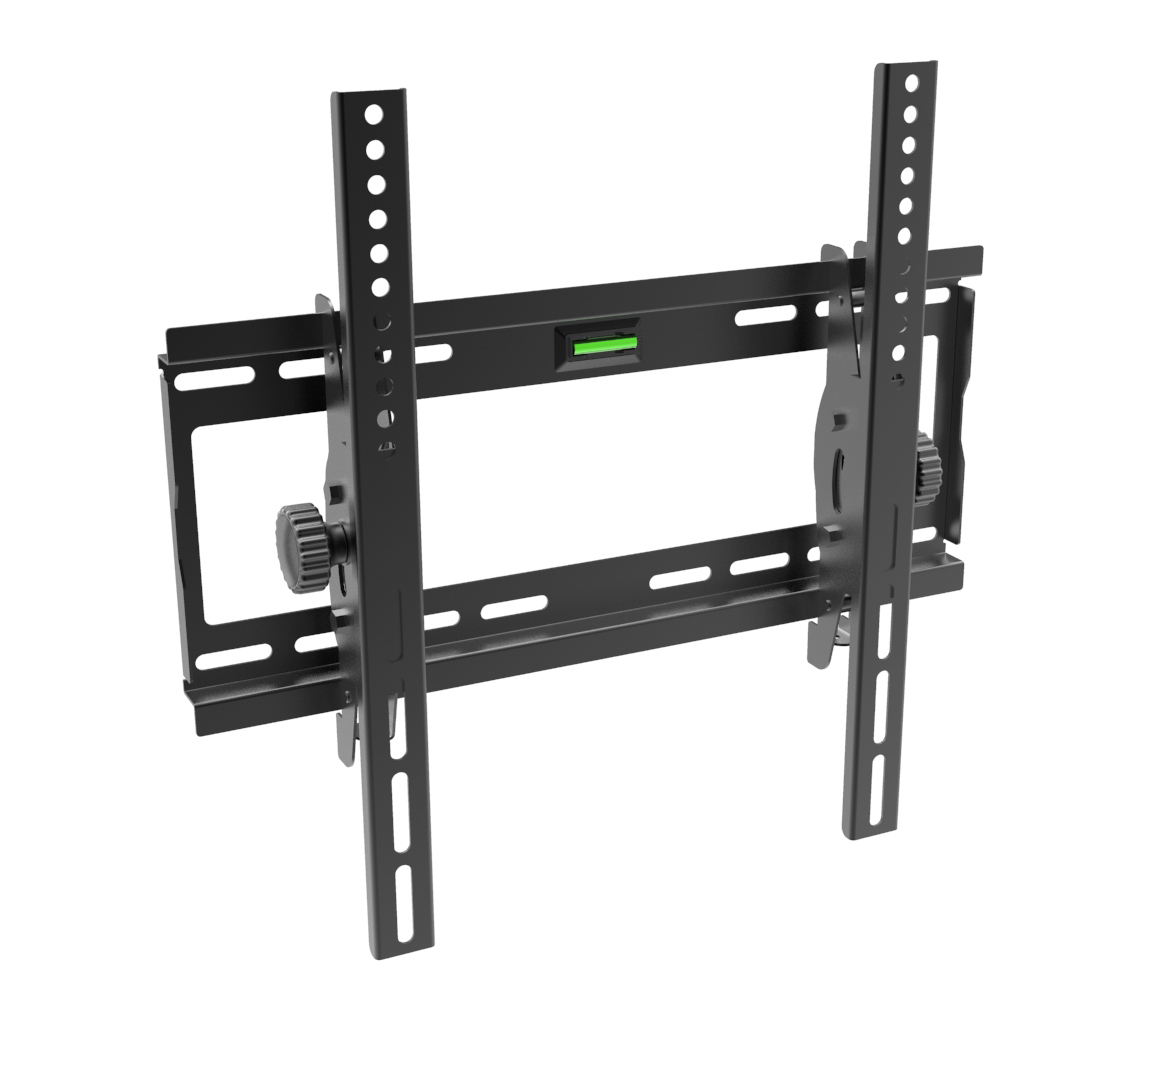 Mount for digital signage